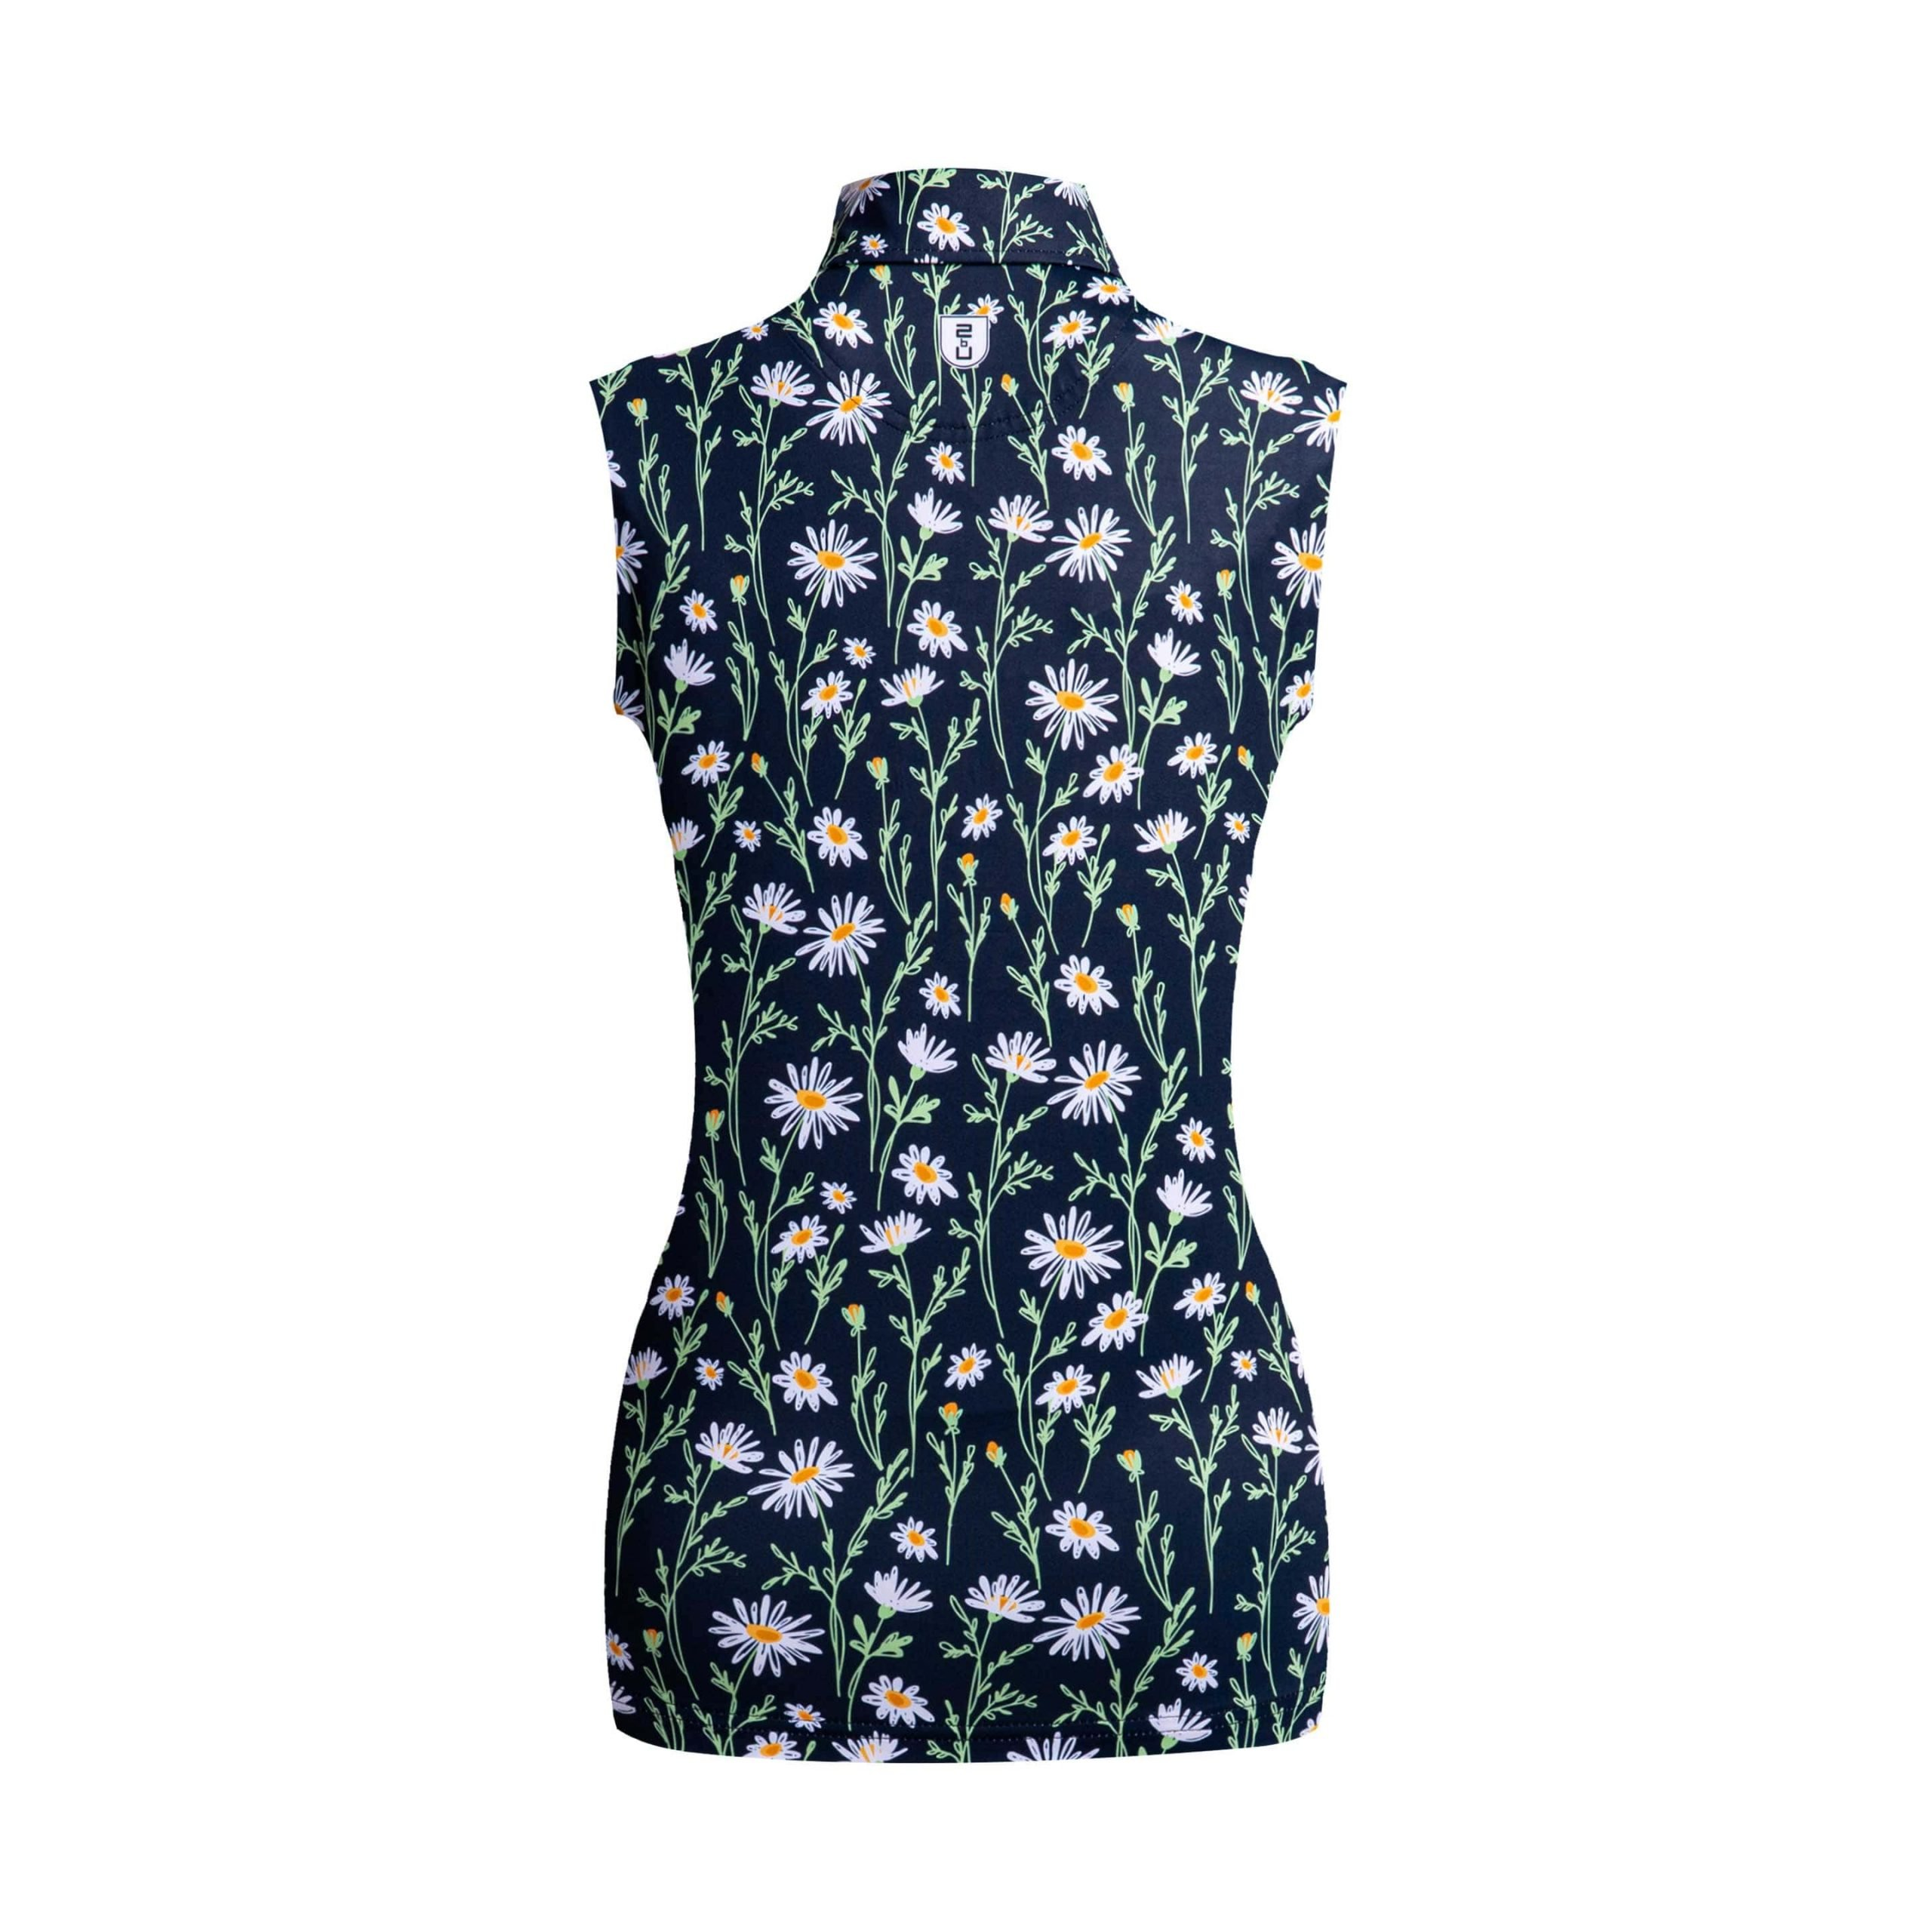 Golf shirt - Midnight Flower (sleeveless)